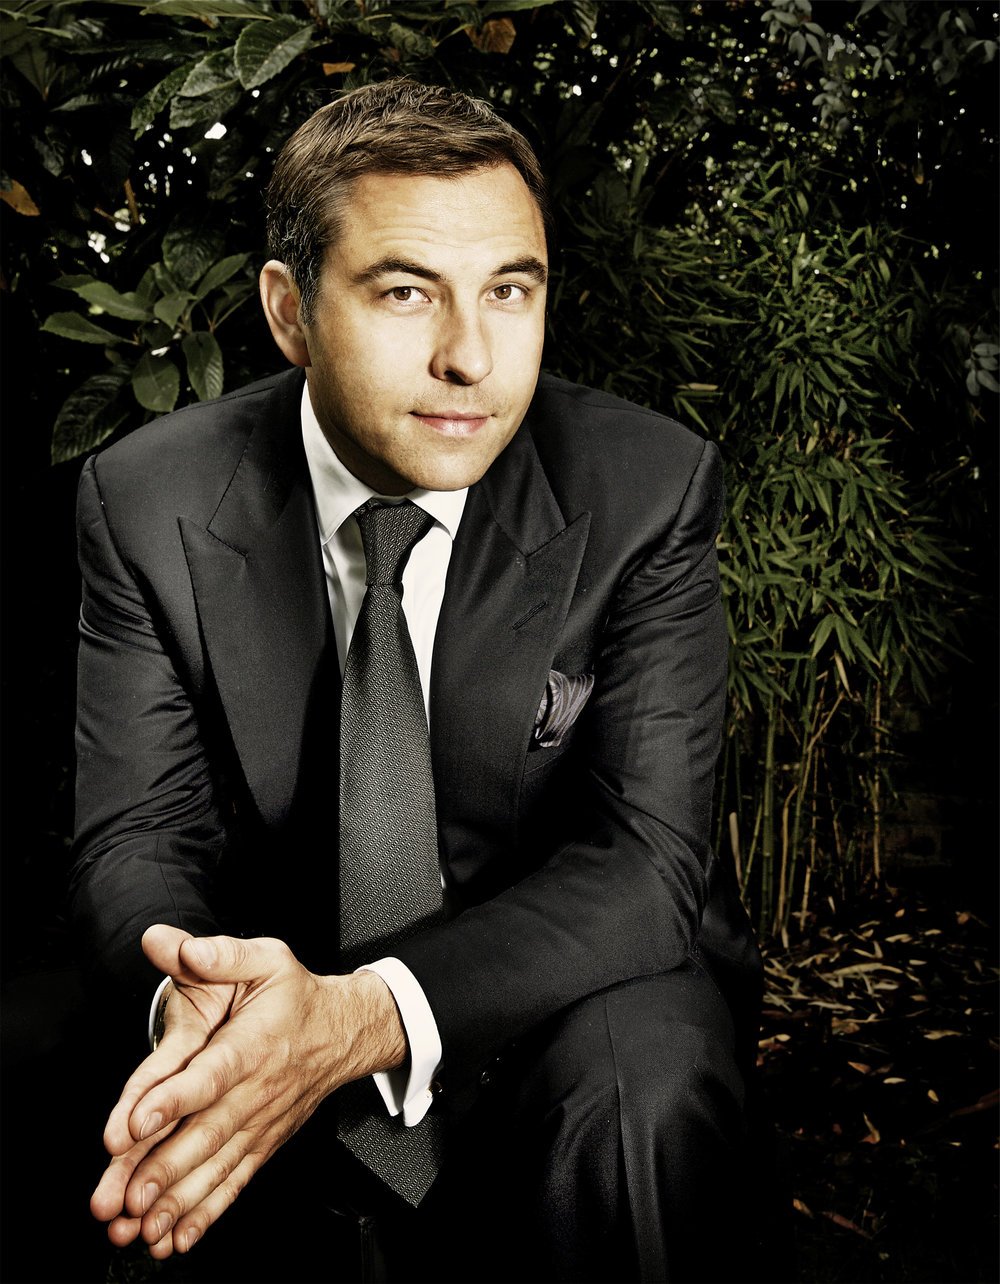 walliams.jpg